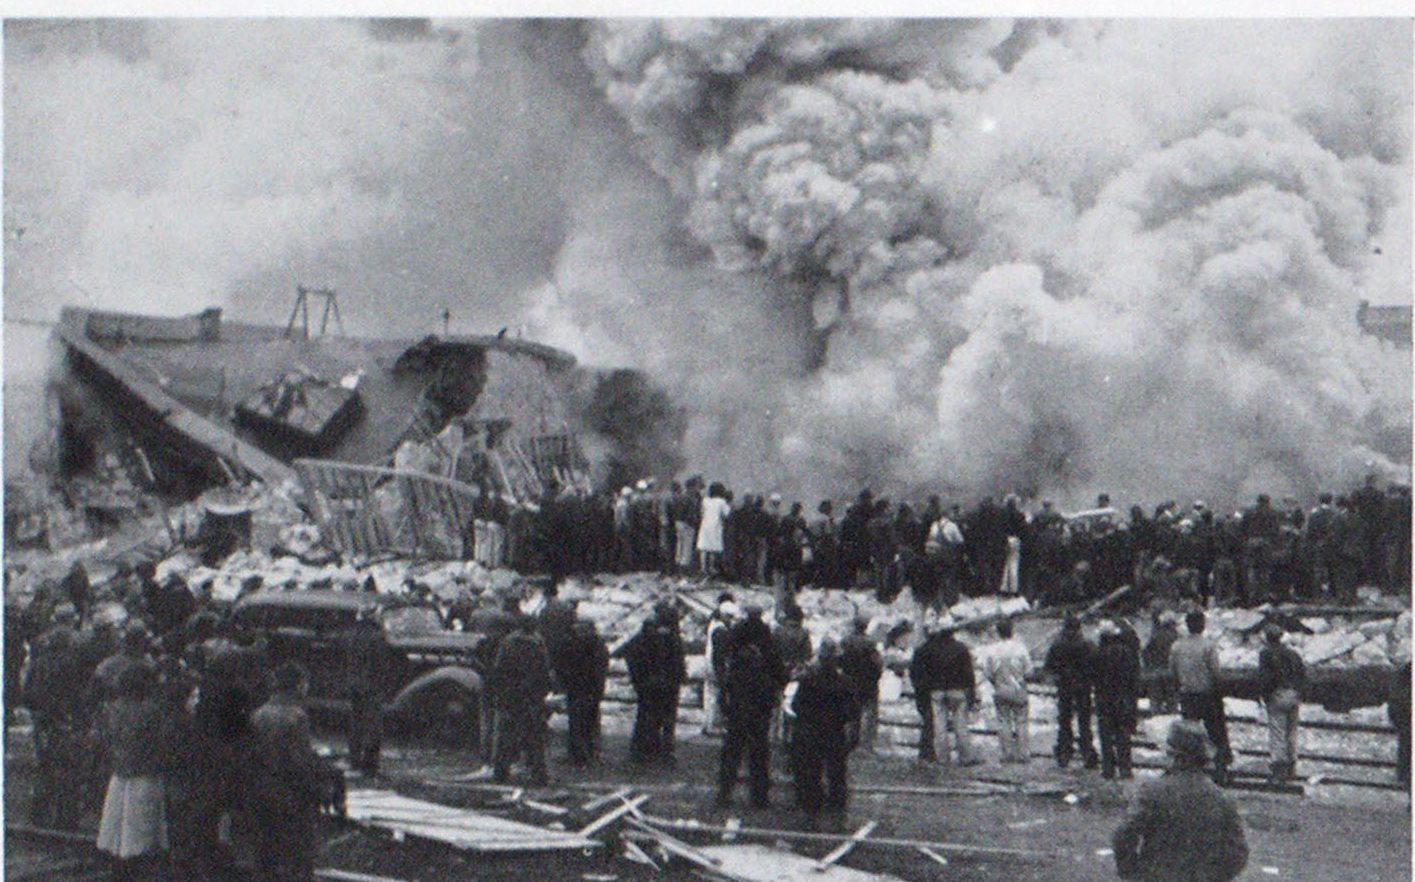 Views of the Fire and Wreckage Resulting from the Gas Blast in Toppenish, Wash. Upper, clouds of smoke from the fire burning underneath the debris.